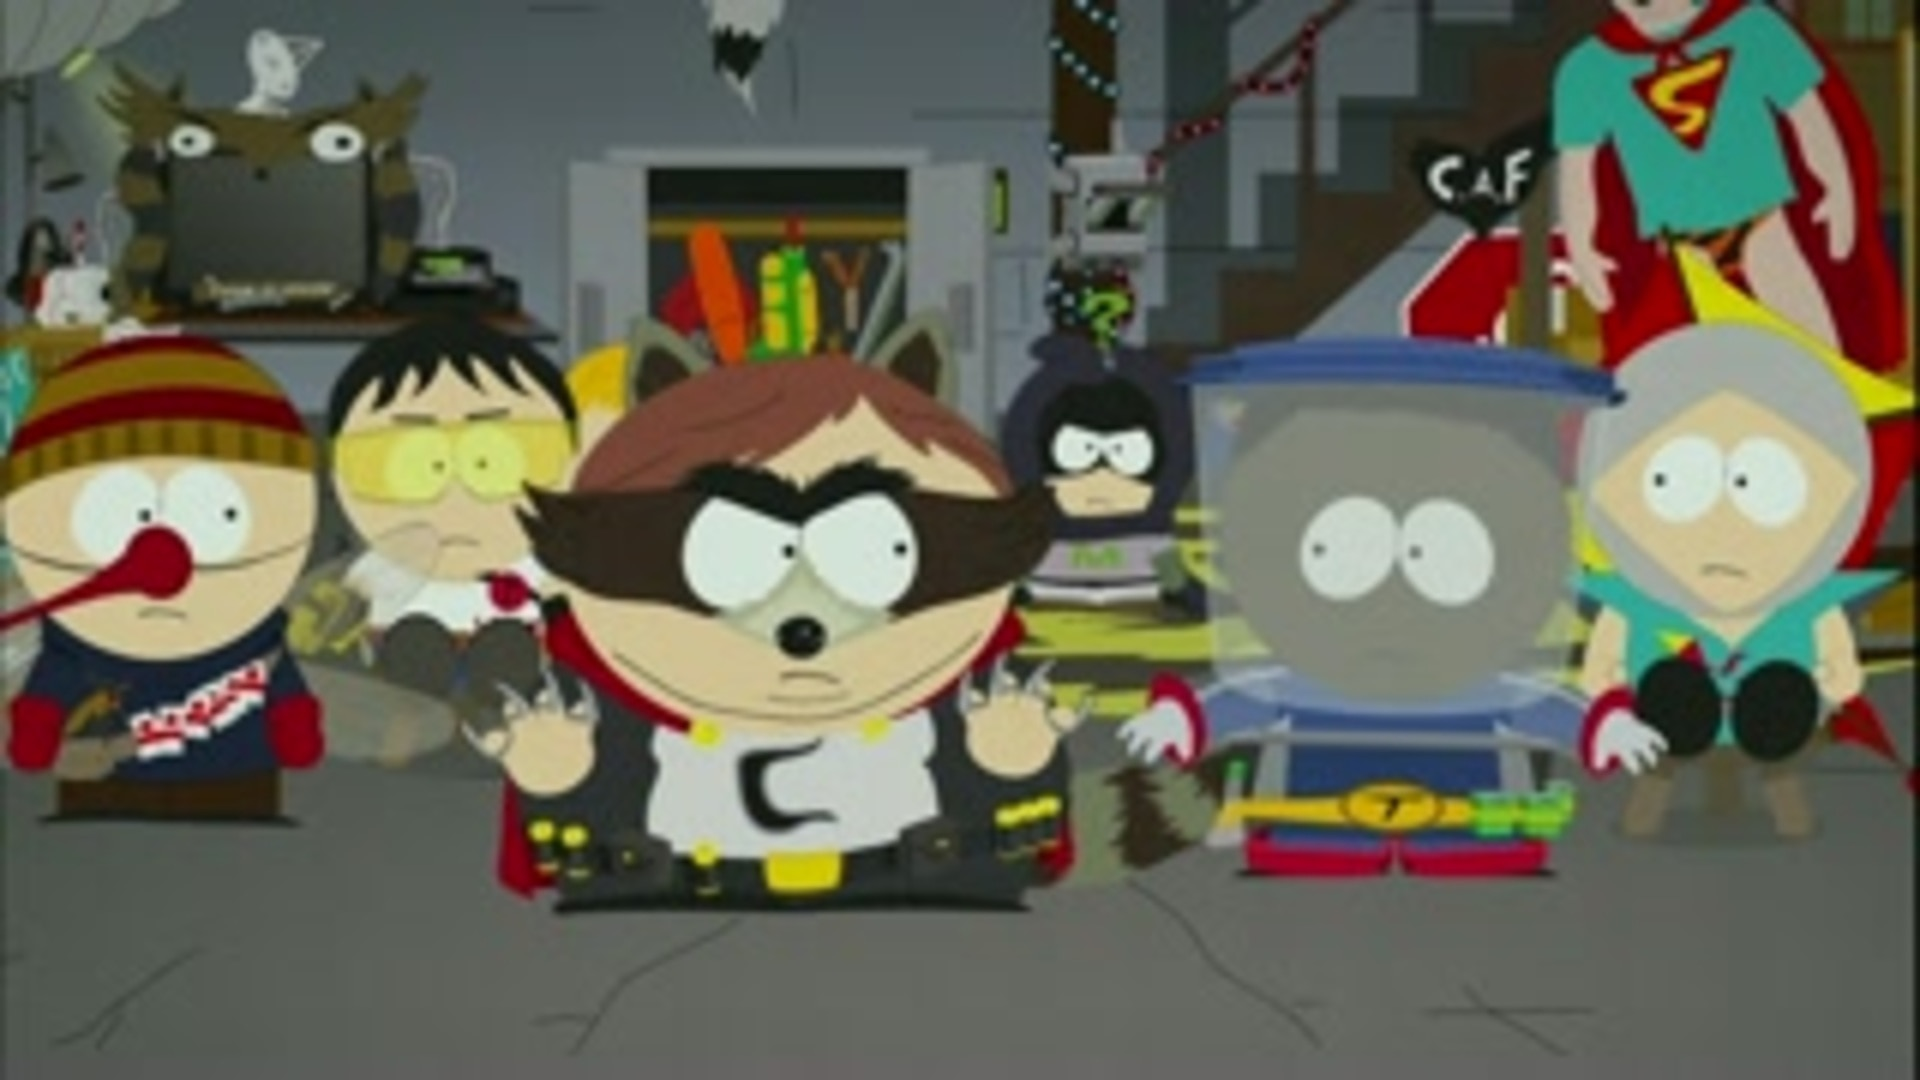 C**n 2: Rise of Captain Hindsight